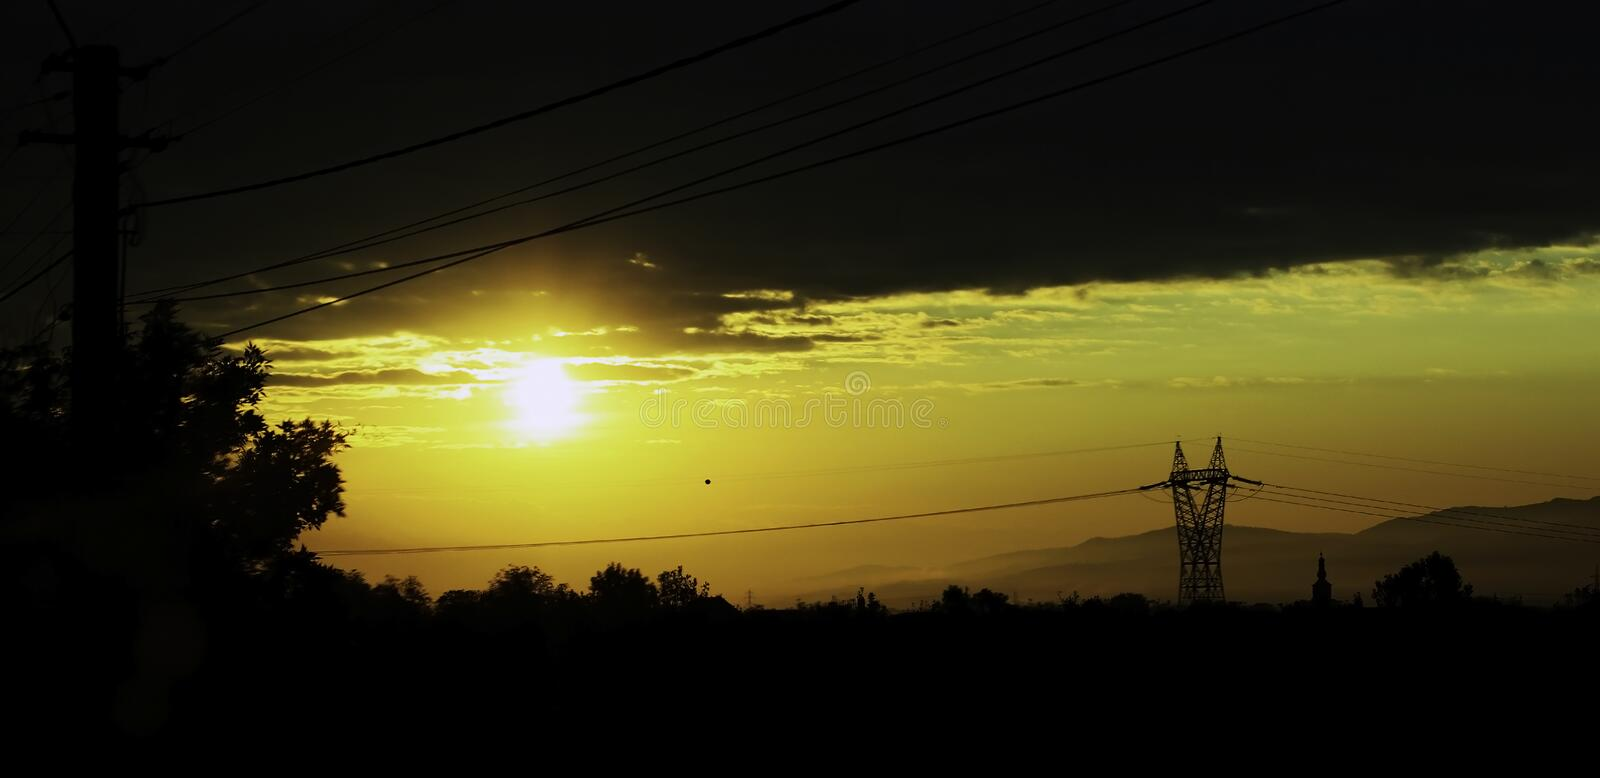 Sunrise pylon royalty free stock photography